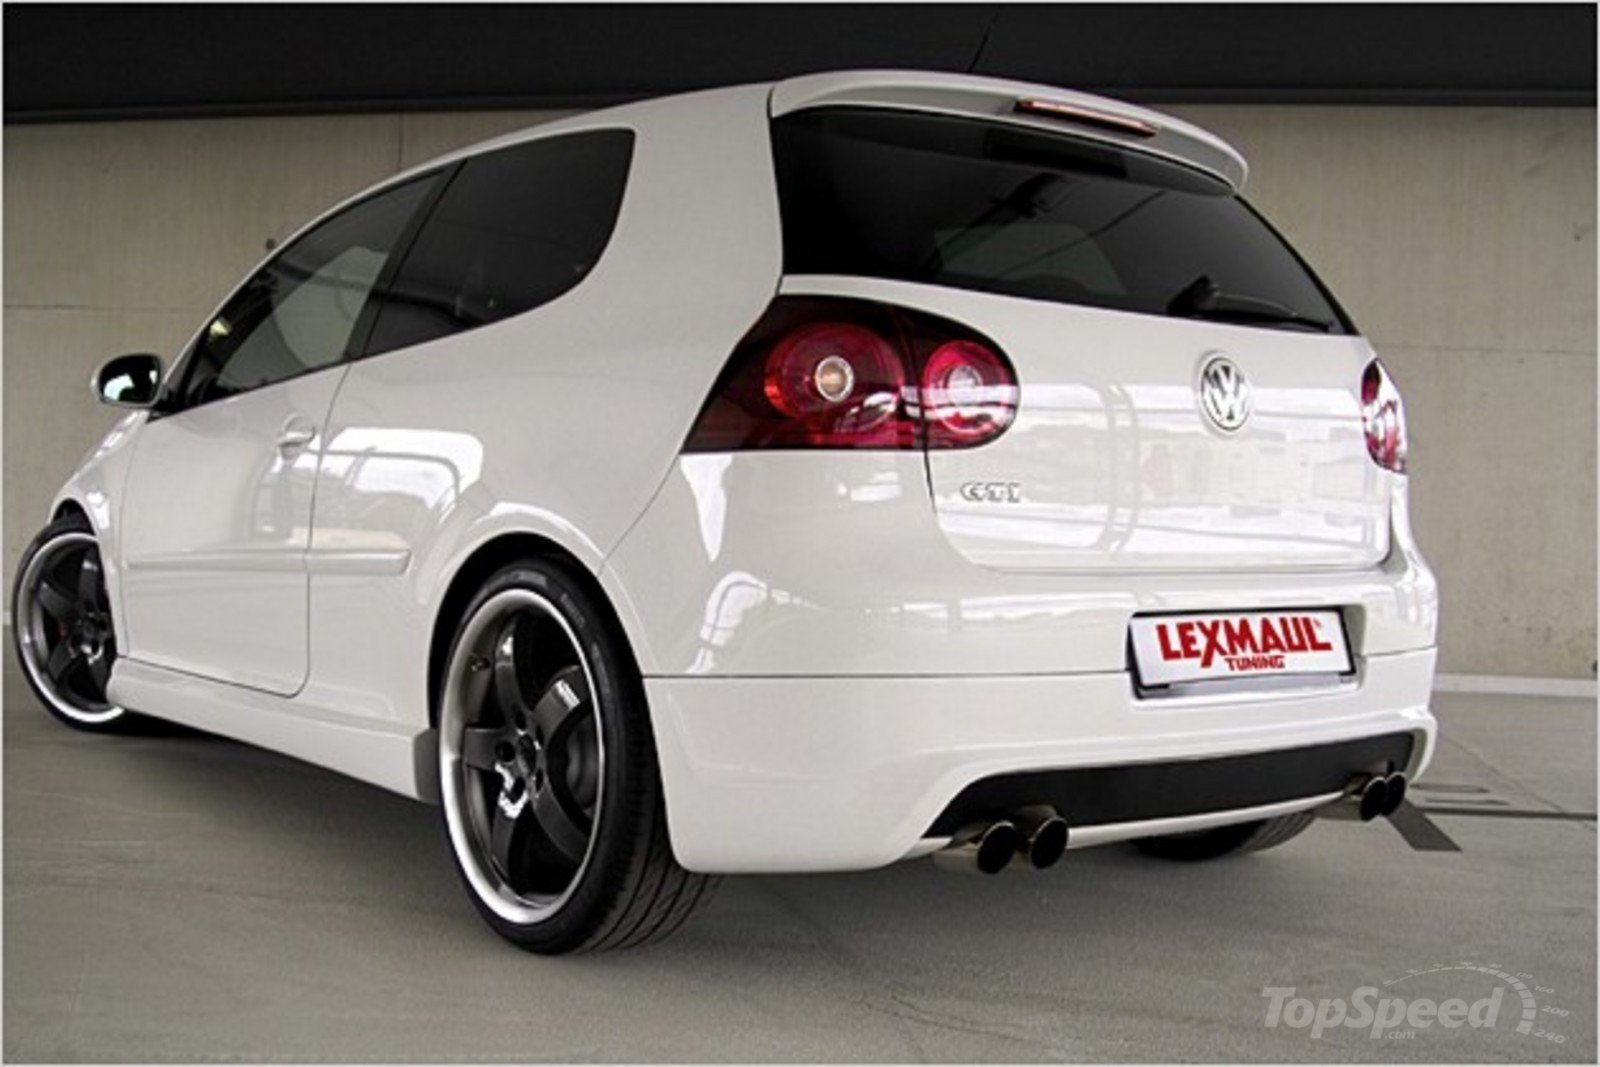 vw golf v gti by lexmaul tuning news top speed. Black Bedroom Furniture Sets. Home Design Ideas